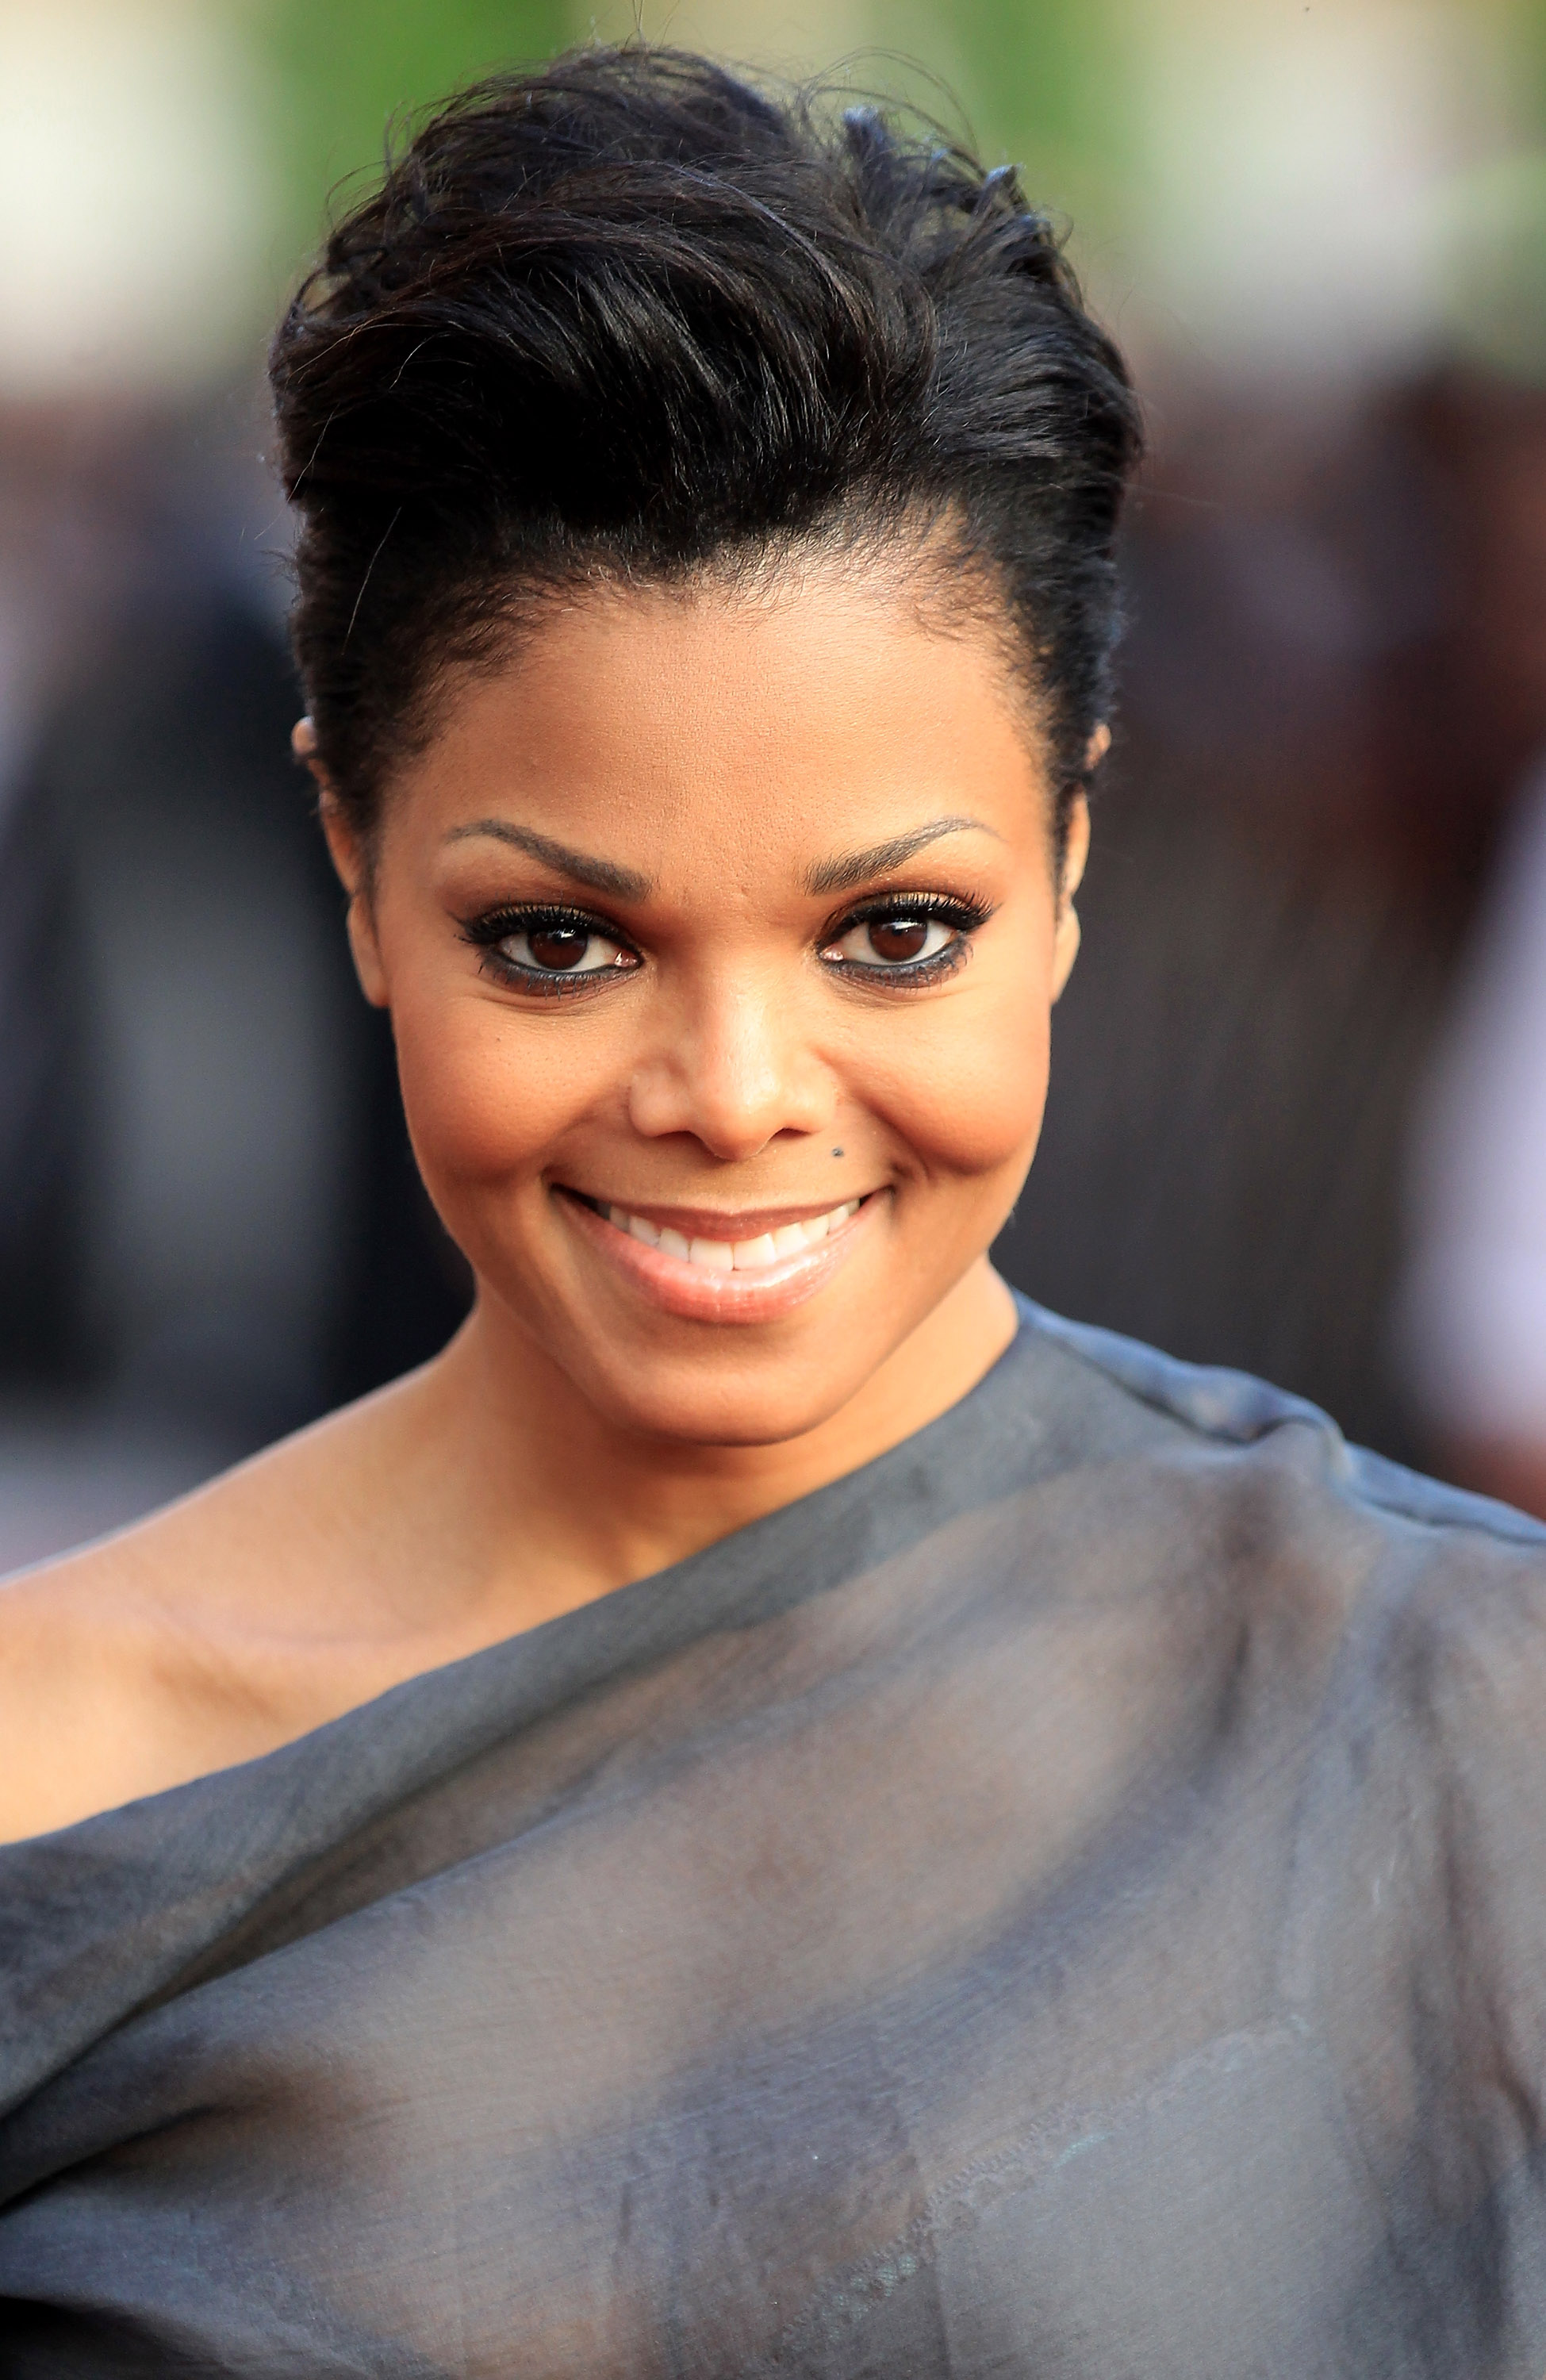 Outstanding 45 Black Hairstyles For Short Hair Short Haircuts For Black Women Hairstyle Inspiration Daily Dogsangcom